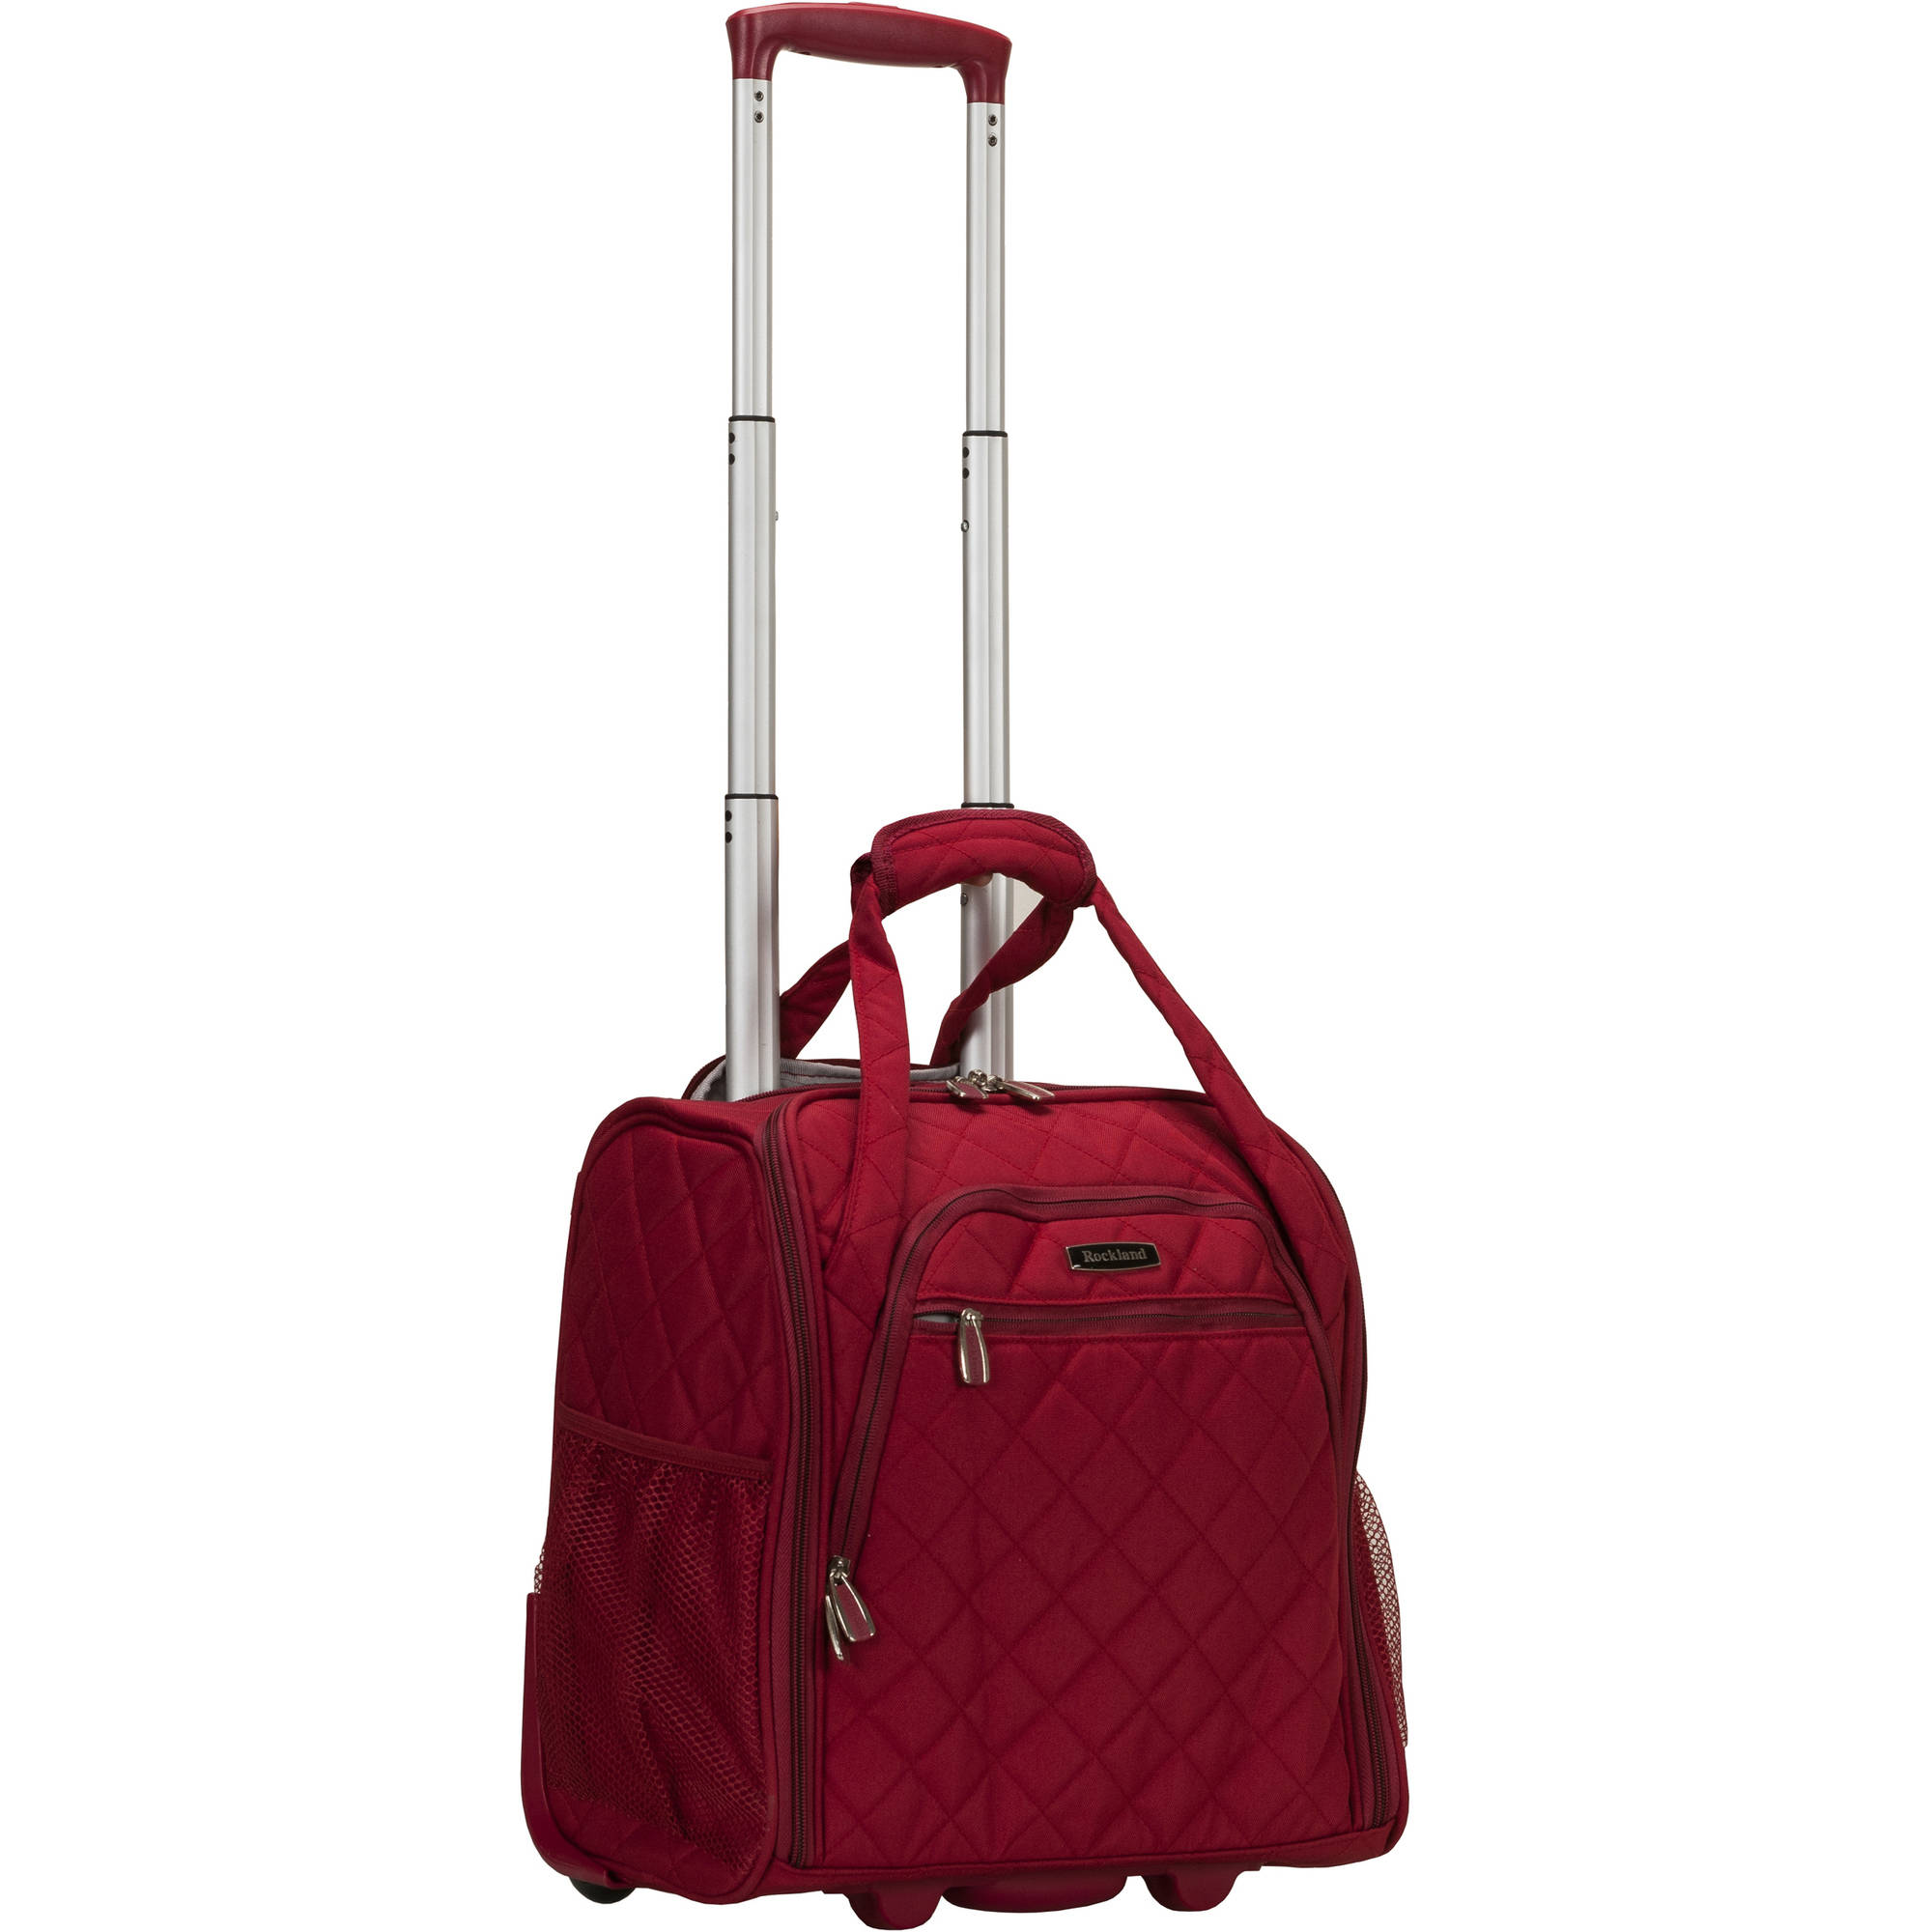 Carry On Luggage With Wheels Mc Luggage